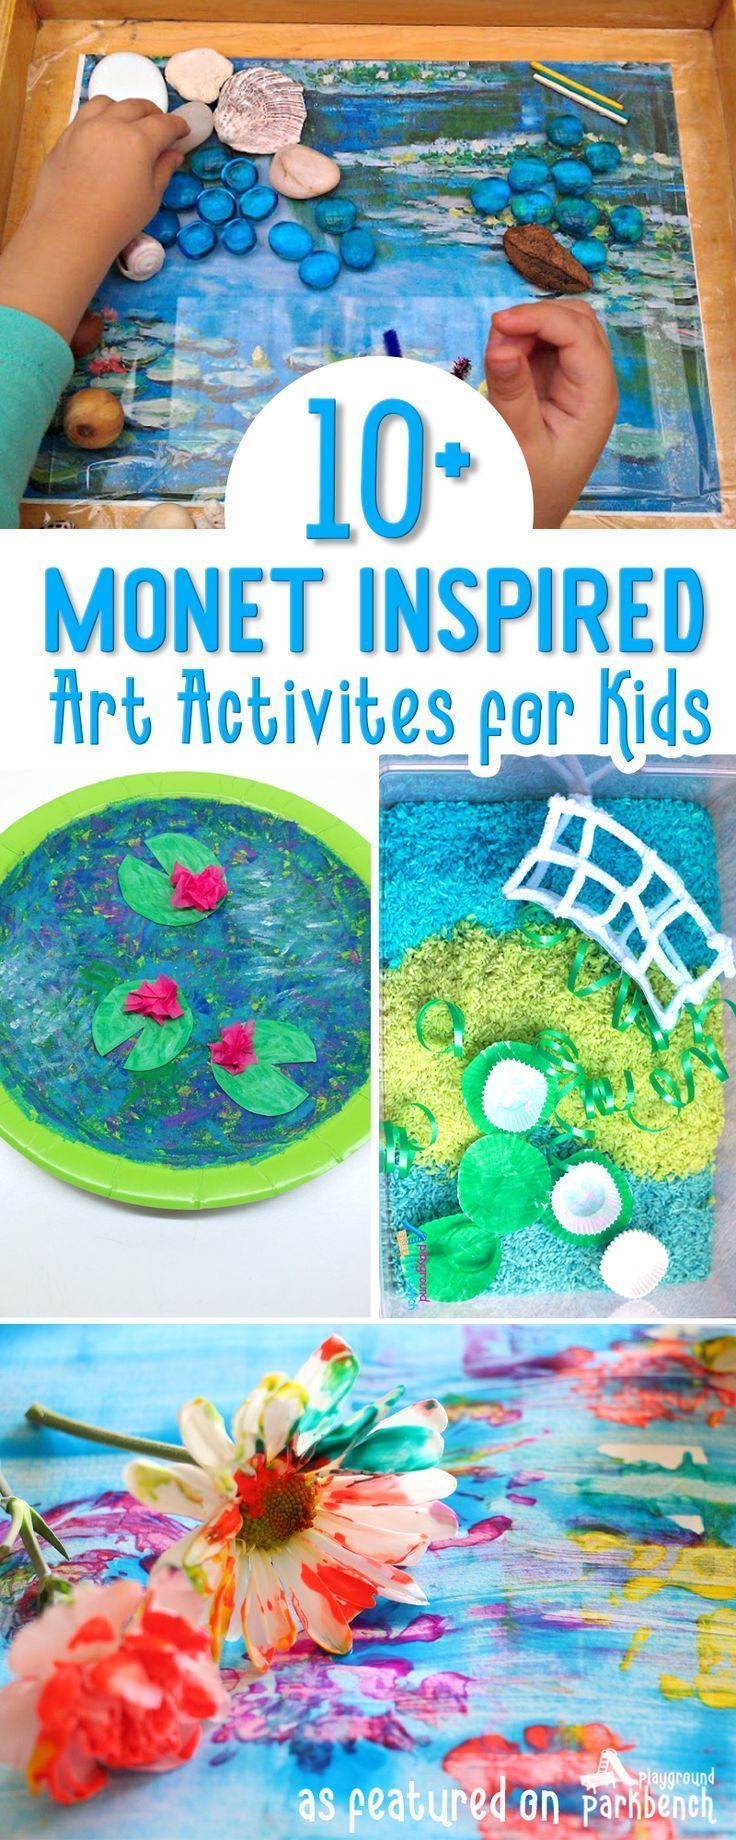 Monet Art for Kids of all ages. Using different techniques (resist, finger painting, collage, and more), and Impressionist works by Monet, kids of all ages, from toddlers and preschoolers, to elementary age artists, will be inspired to create these fun works of art via @playgroundpb #kidscrafts #CampArtAndCraft